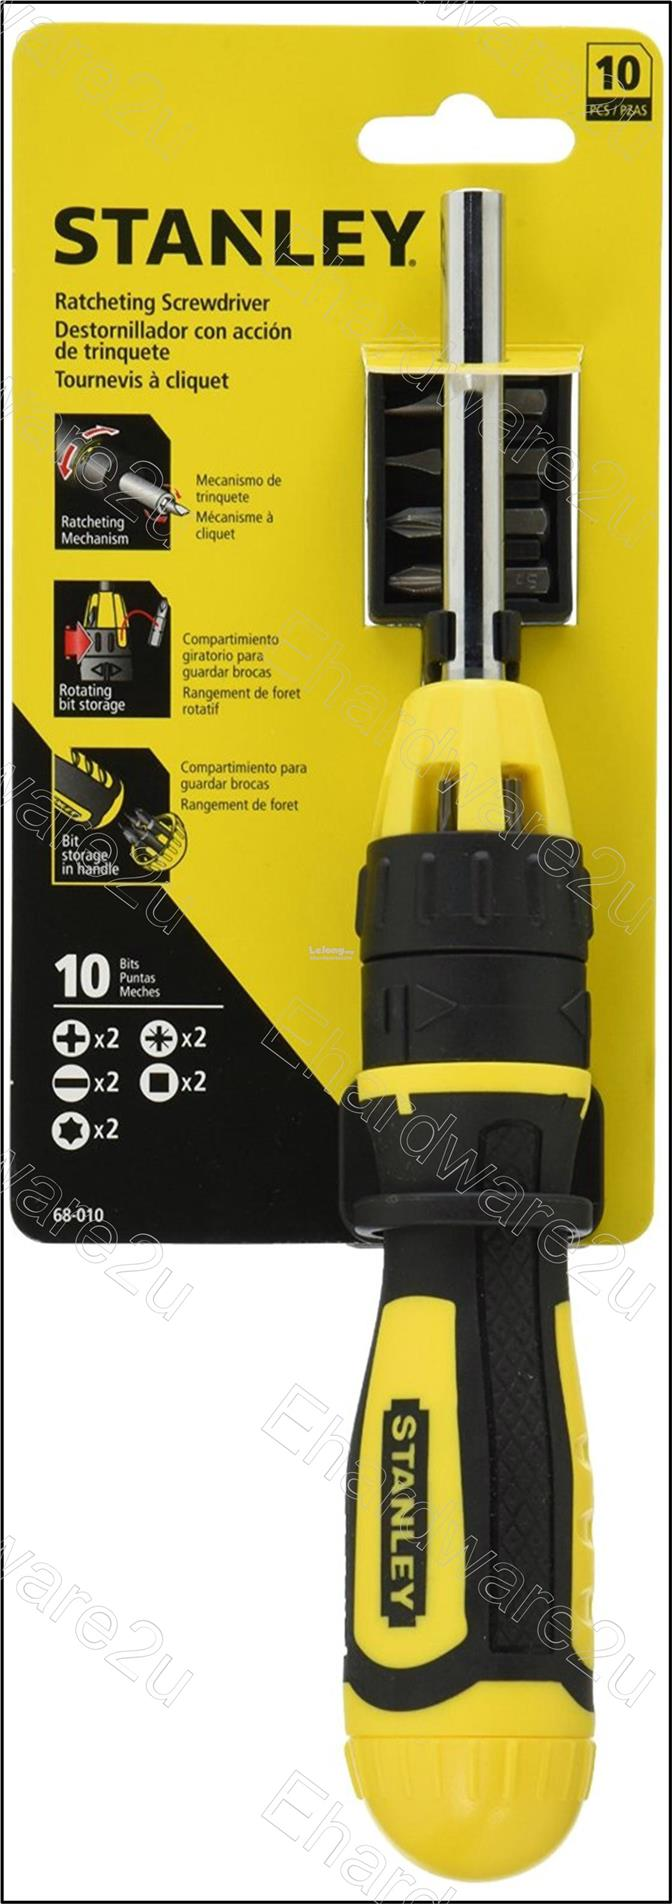 STANLEY Multi-Bit Ratchet Screwdriver With 10-Bits (68010)